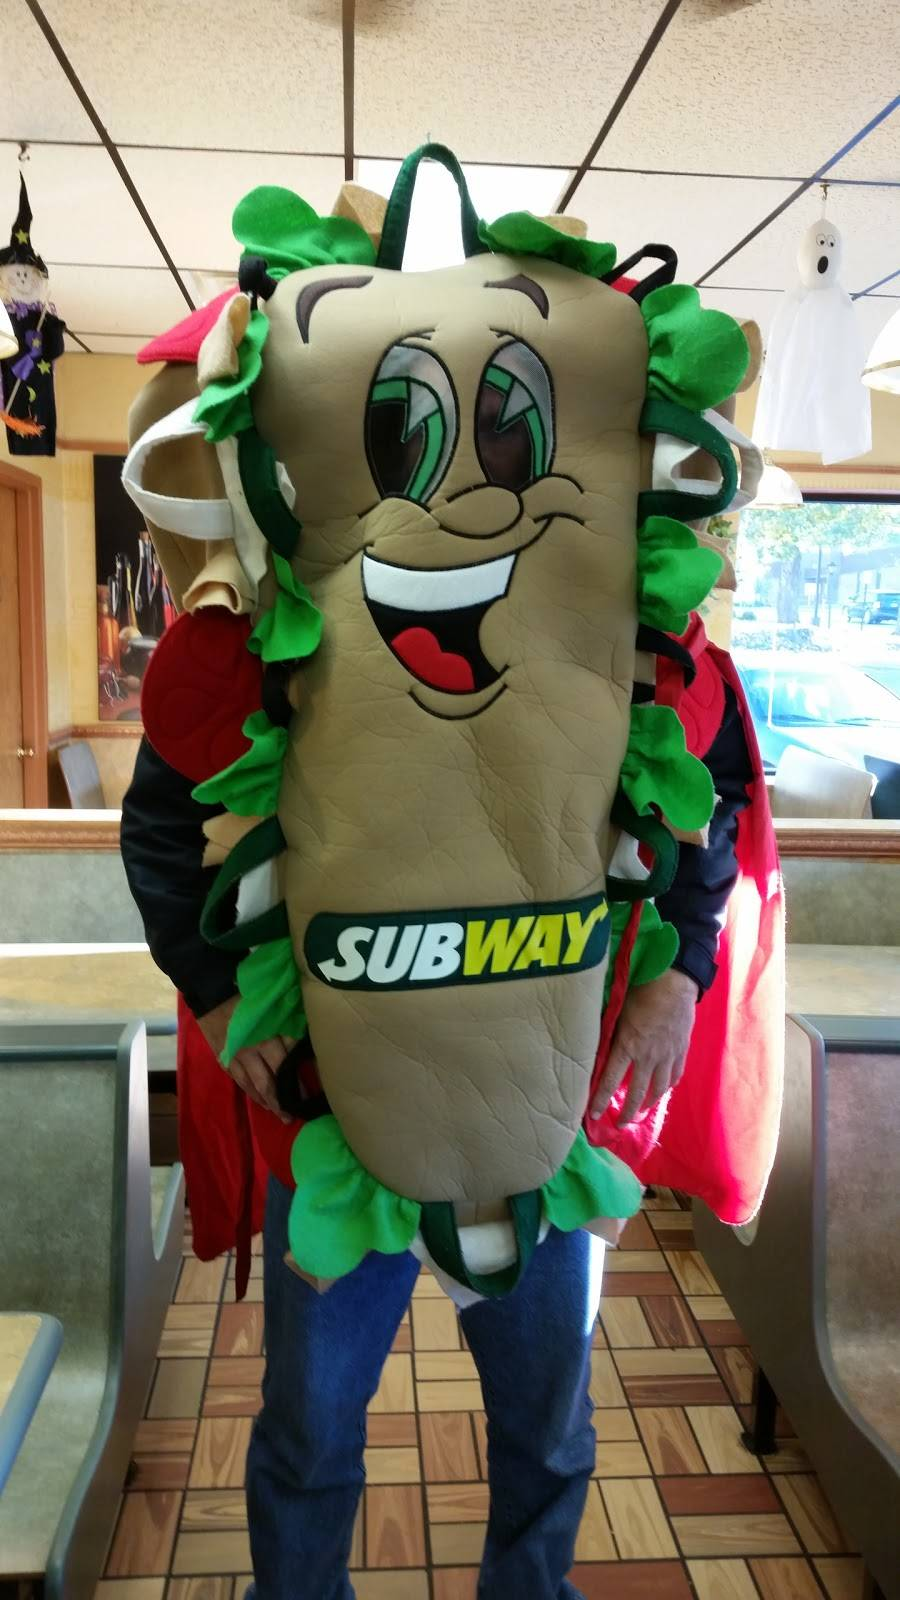 Subway Restaurants | restaurant | 271 S Main St, Philippi, WV 26416, USA | 3044572099 OR +1 304-457-2099